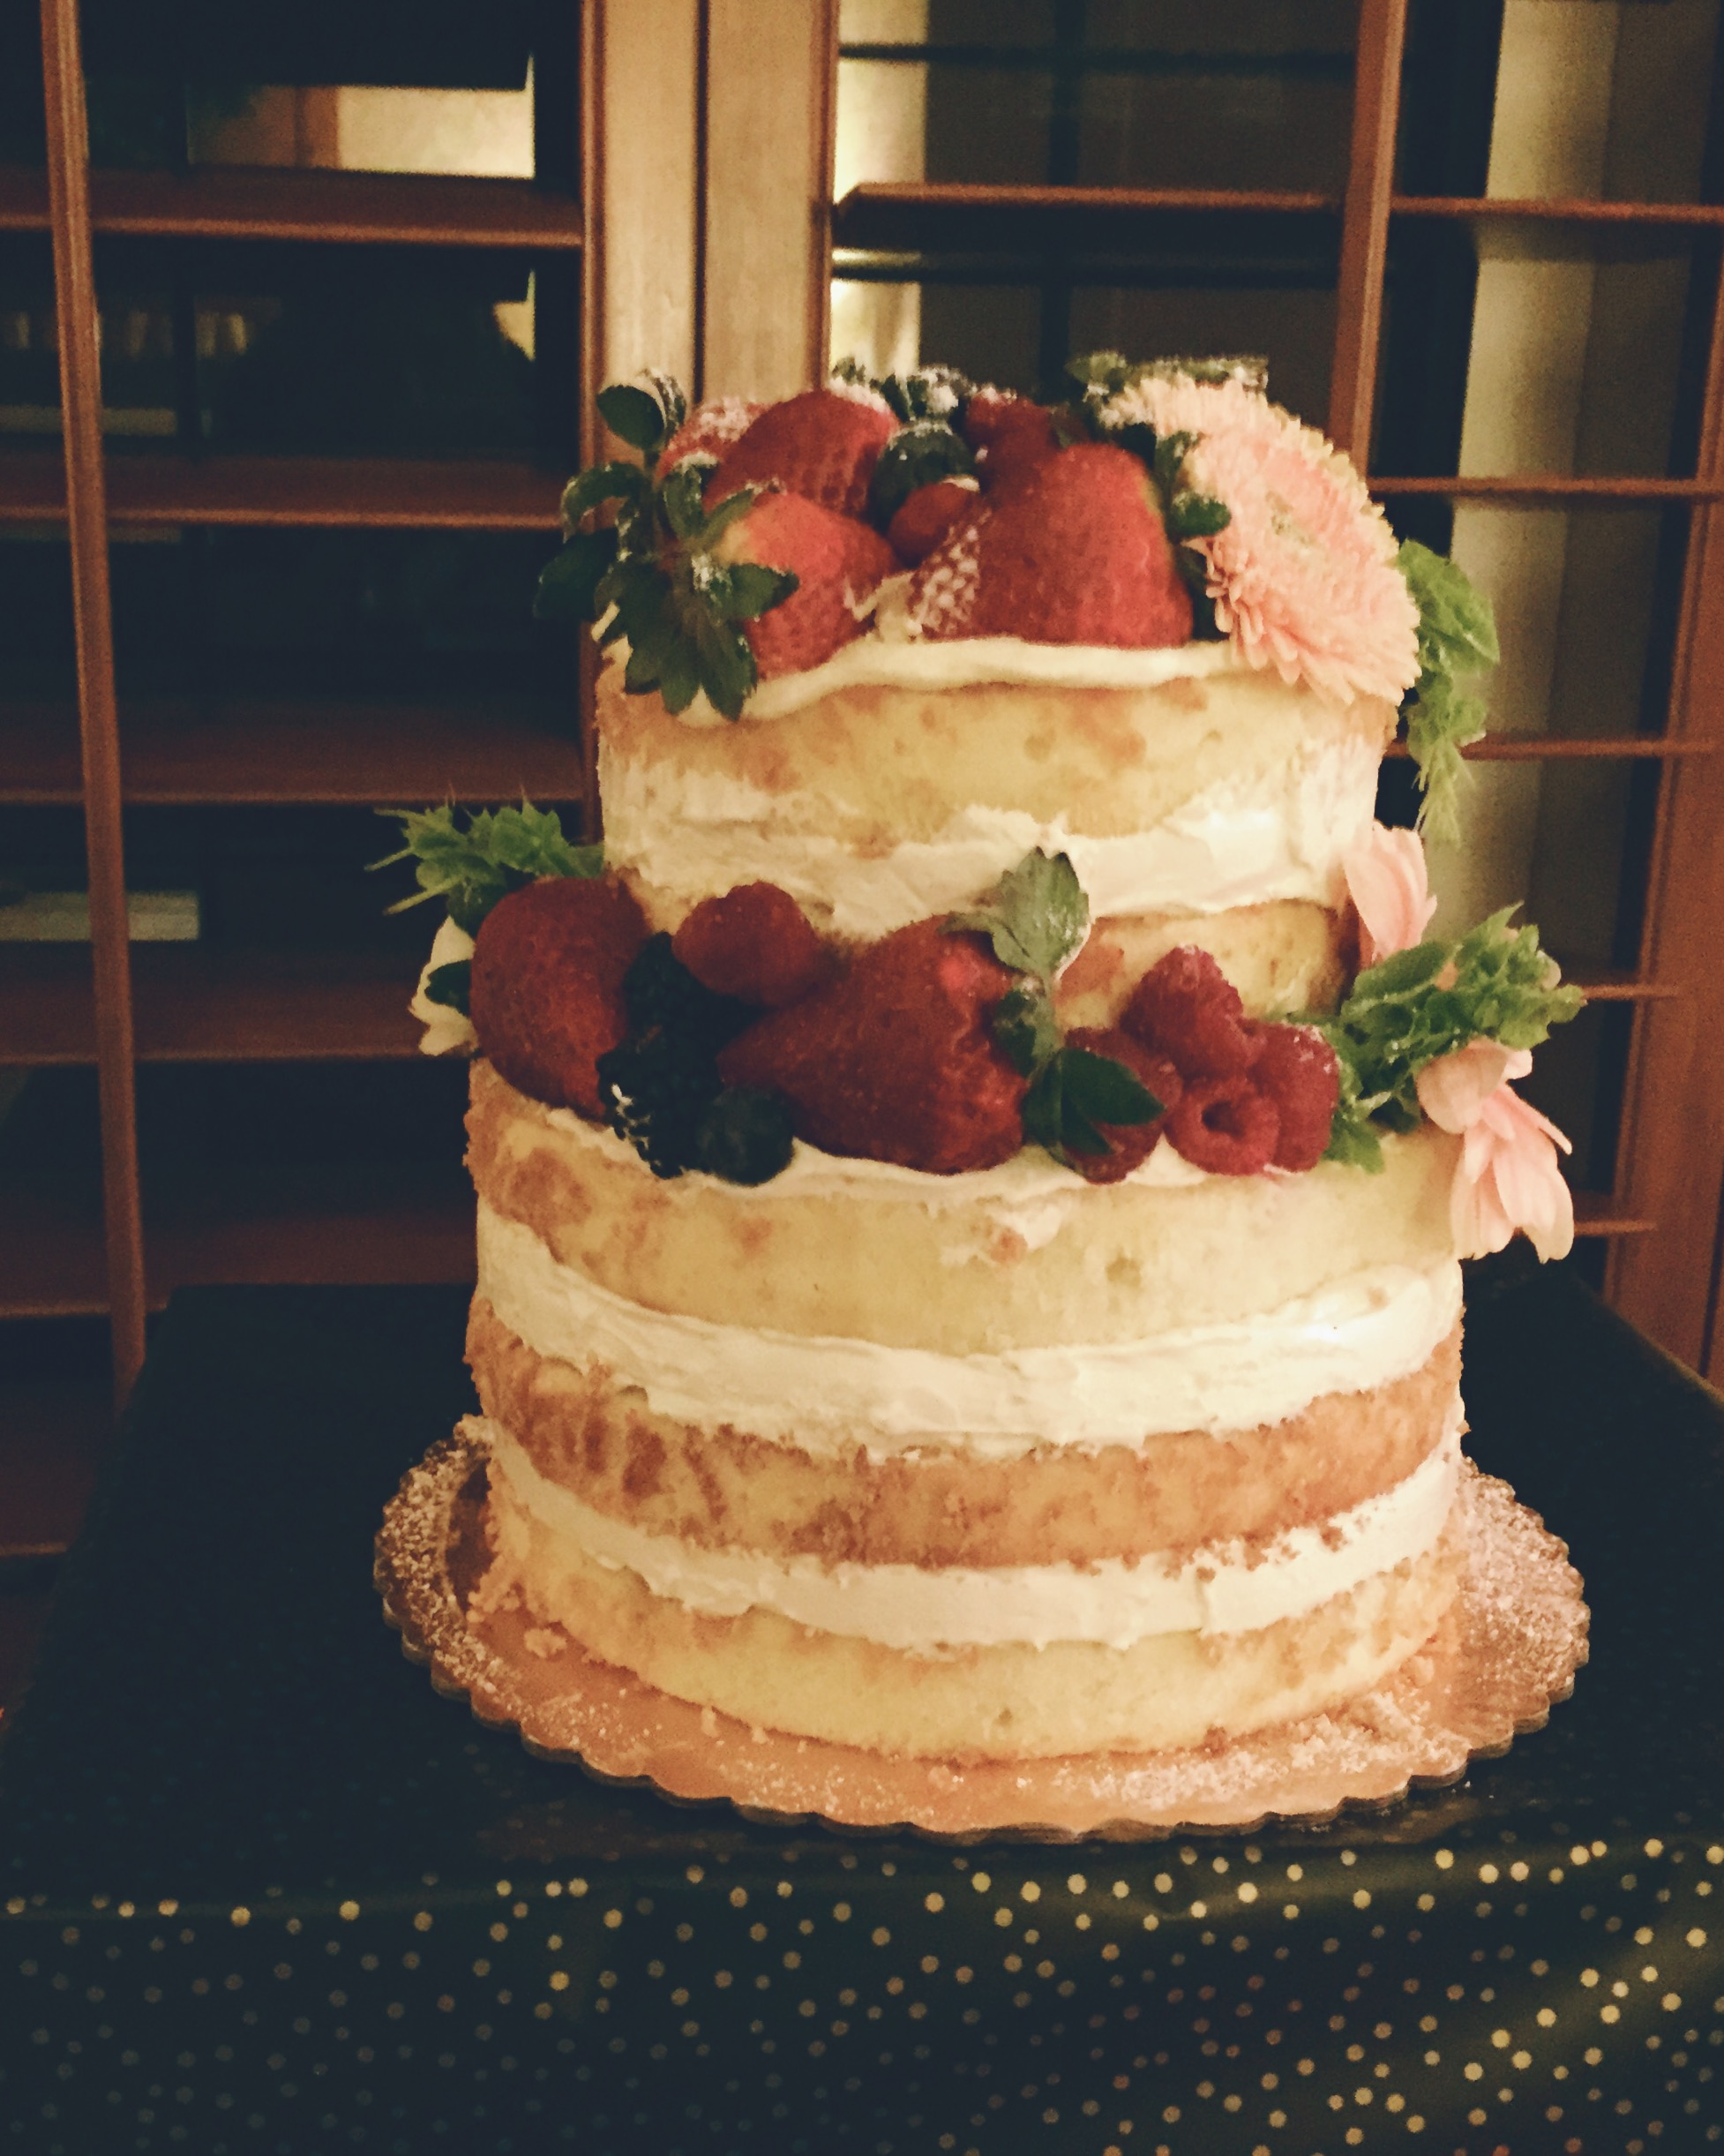 Naked Cake with Raspberry Coulis, Raspberries, and Vanilla Buttercream